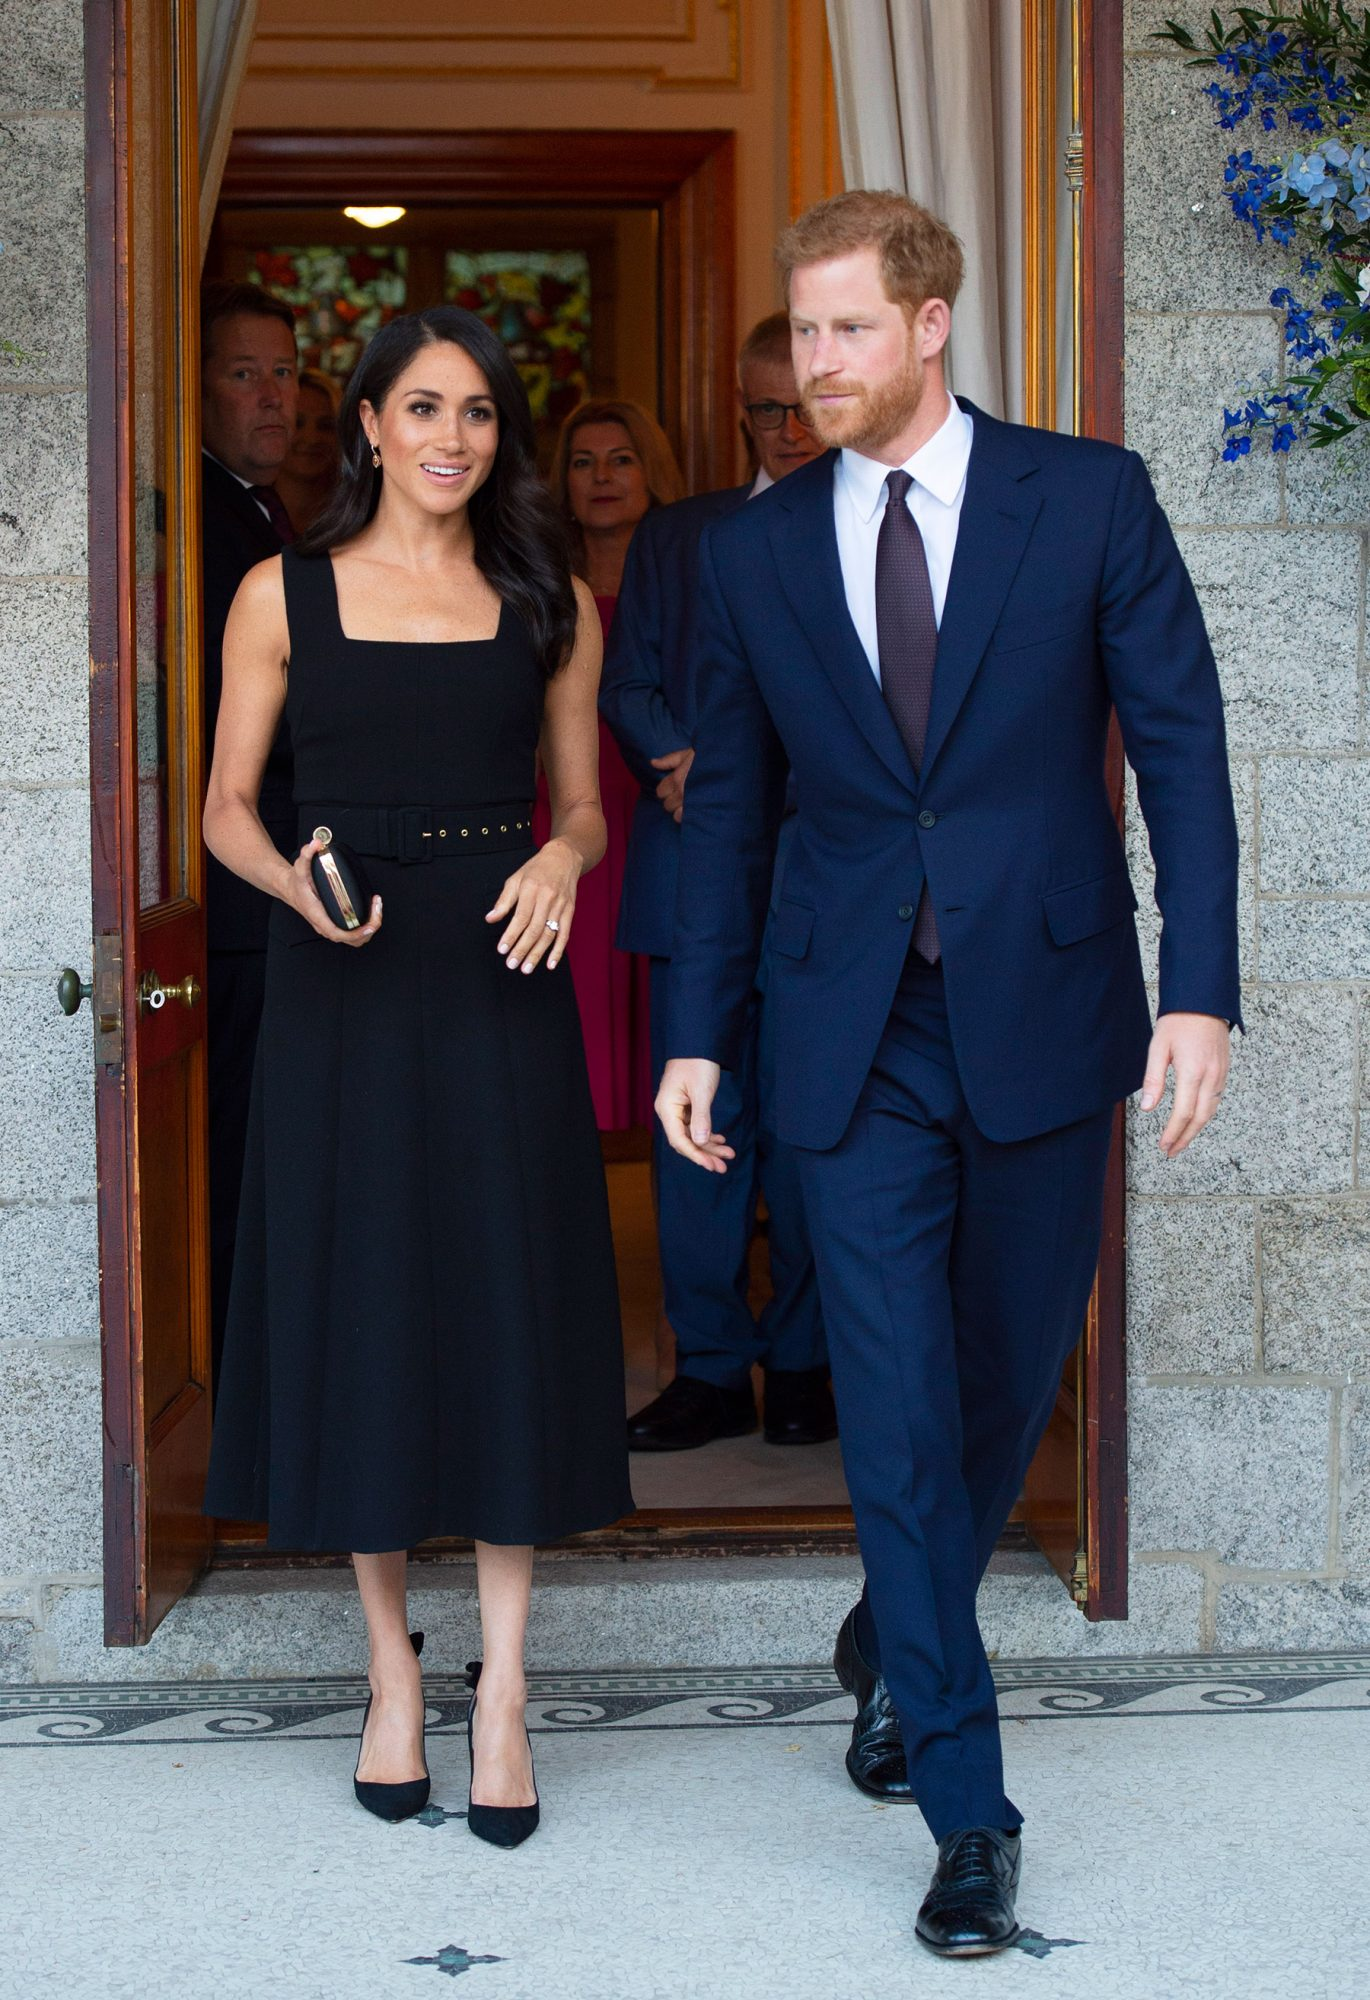 The Duke And Duchess Of Sussex Visit Ireland